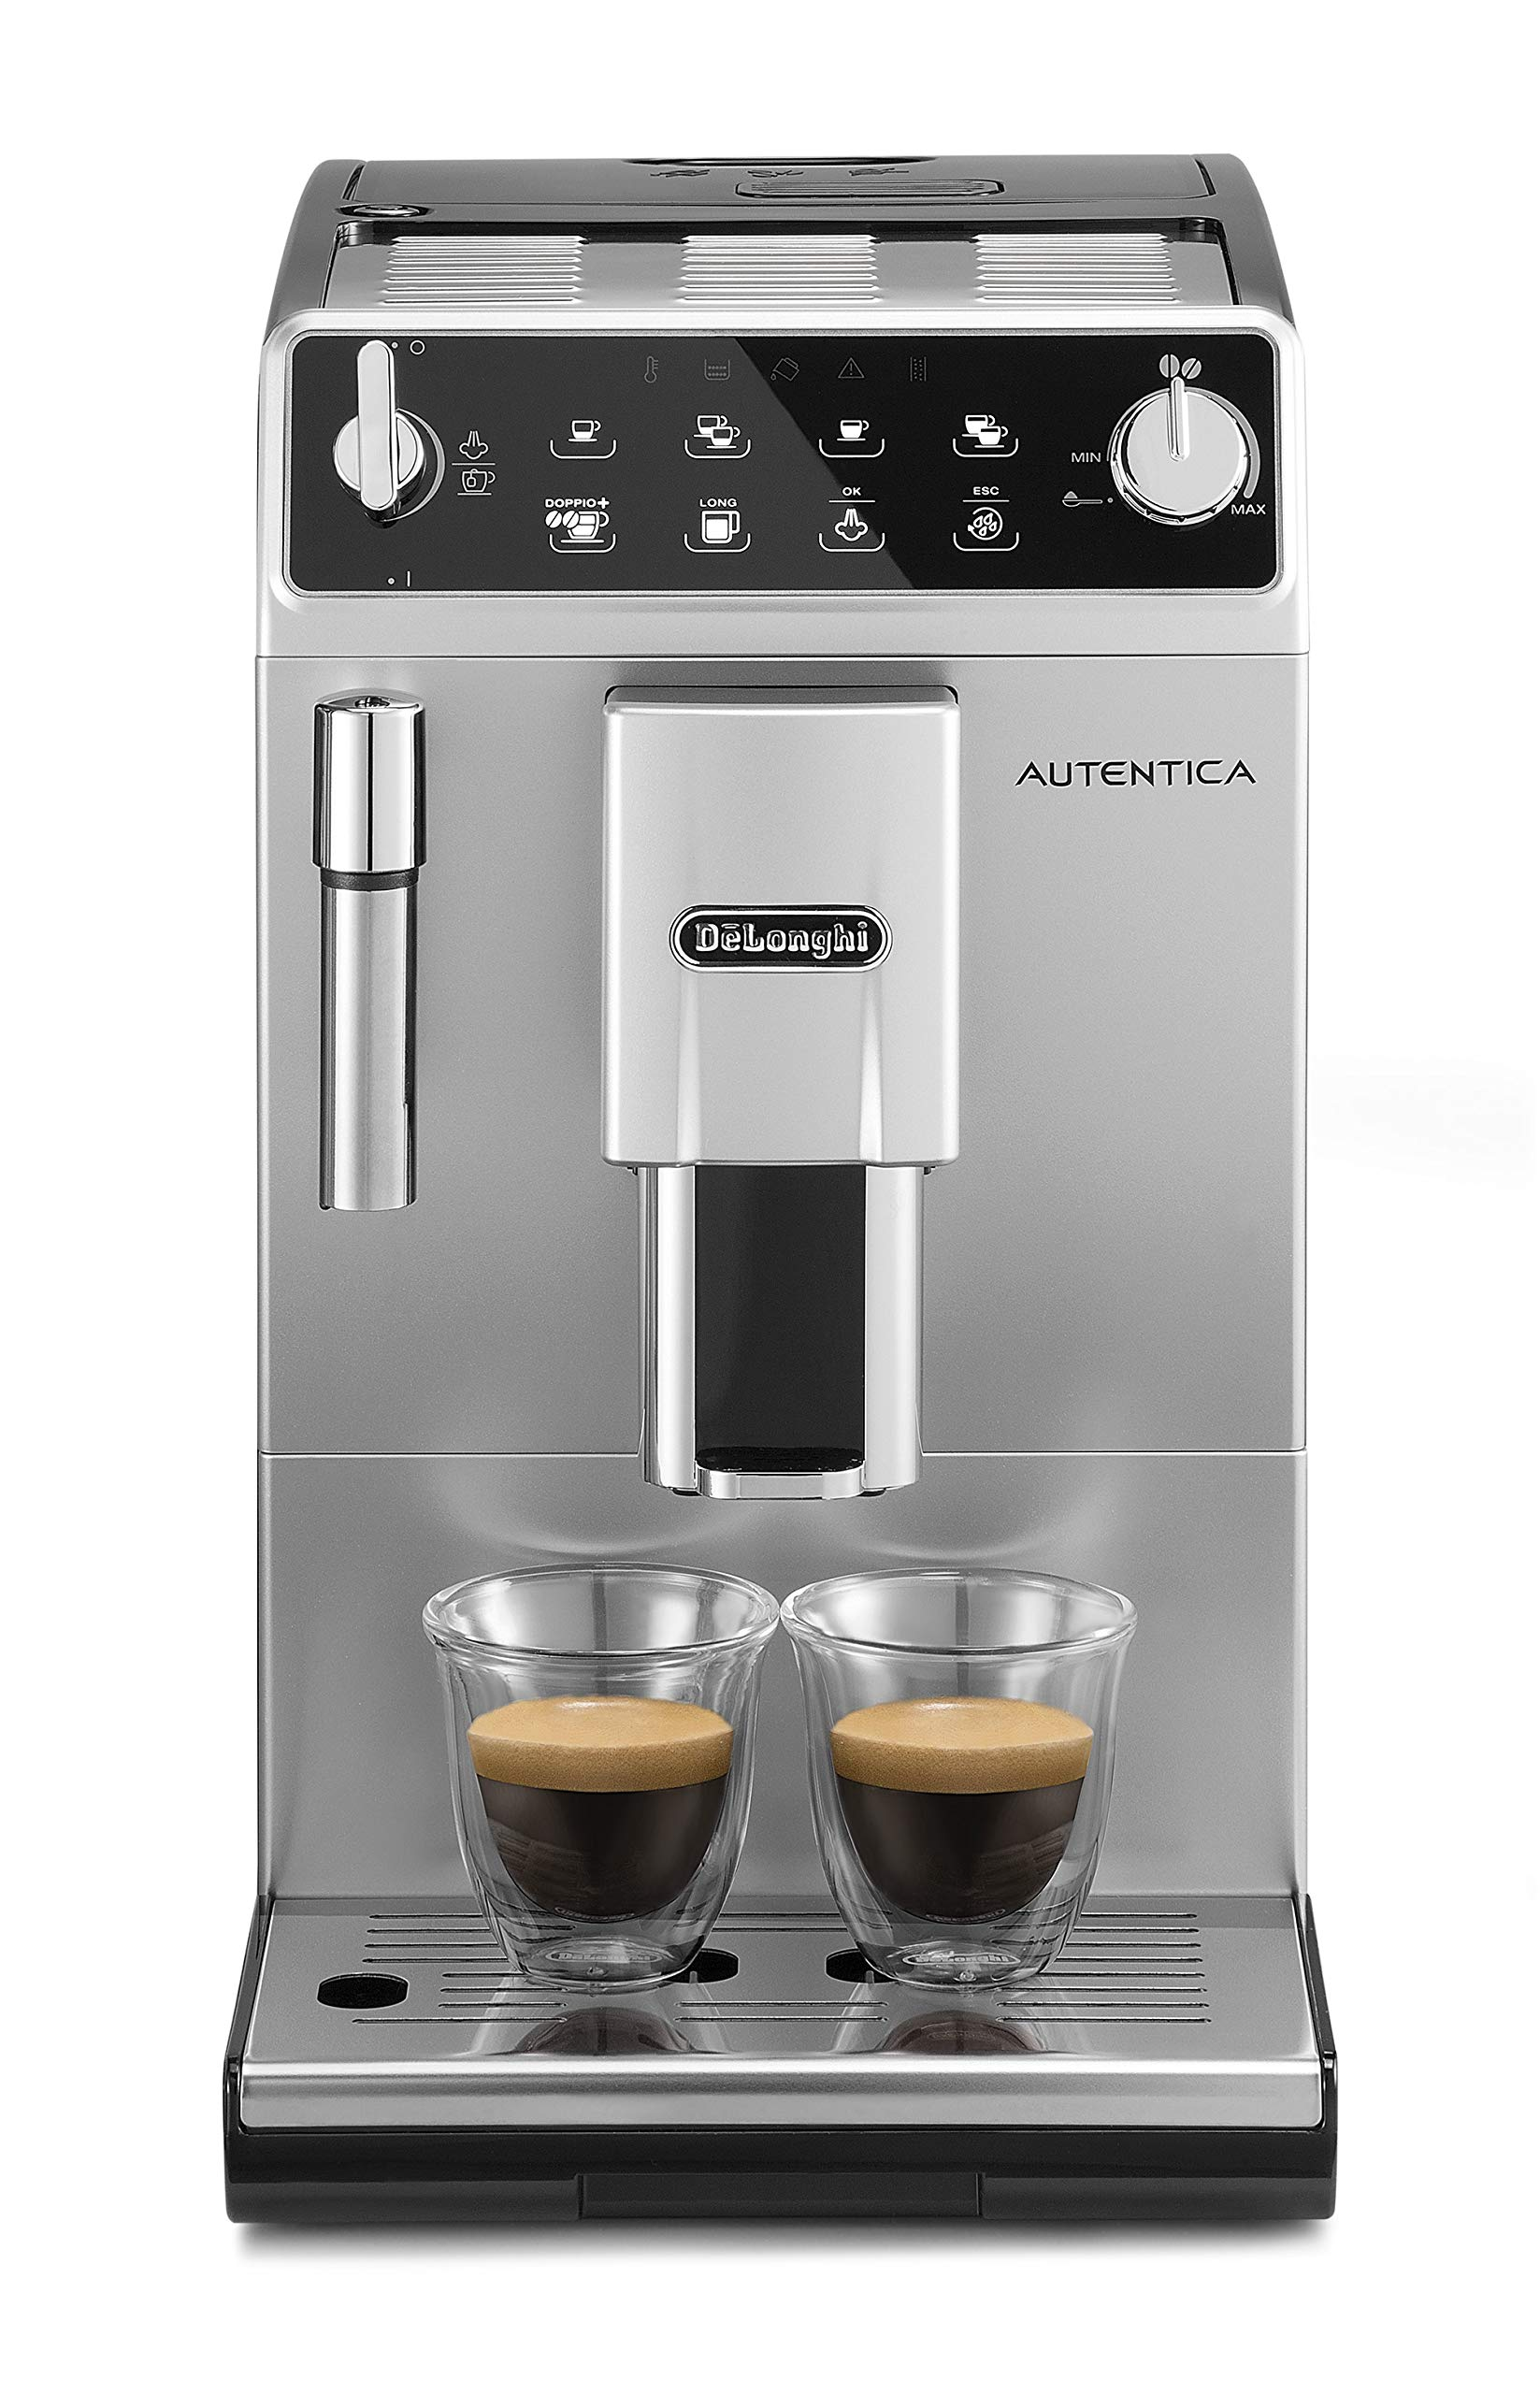 81Cg5mYhKCL - De'Longhi Autentica Cappuccino, Fully Automatic Bean to Cup Coffee Machine, Espresso Maker, ETAM29.660.SB, Silver and…